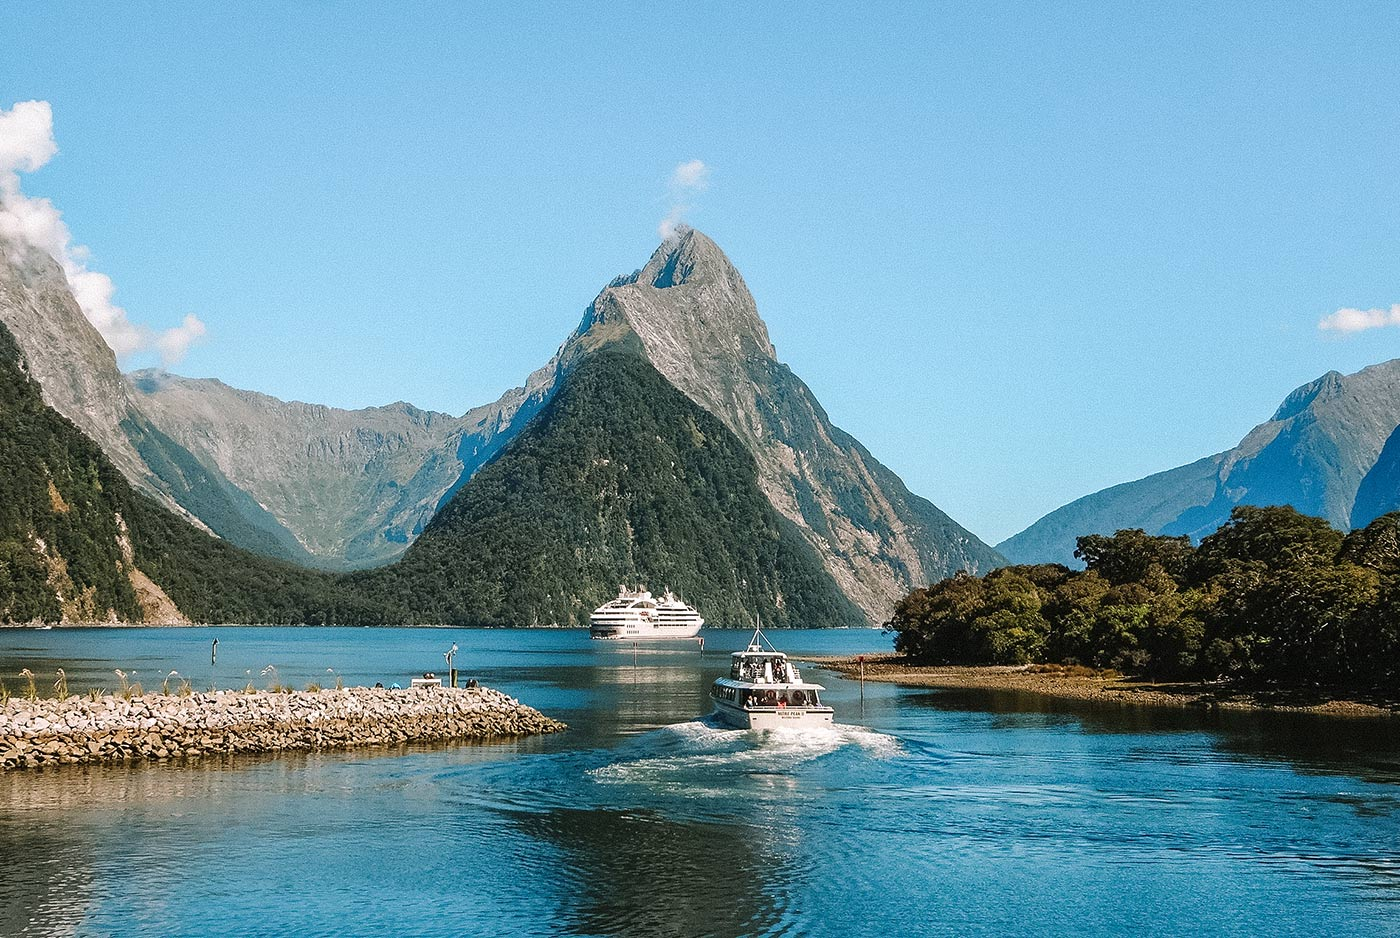 A day trip to Milford Sound, New Zealand blog post